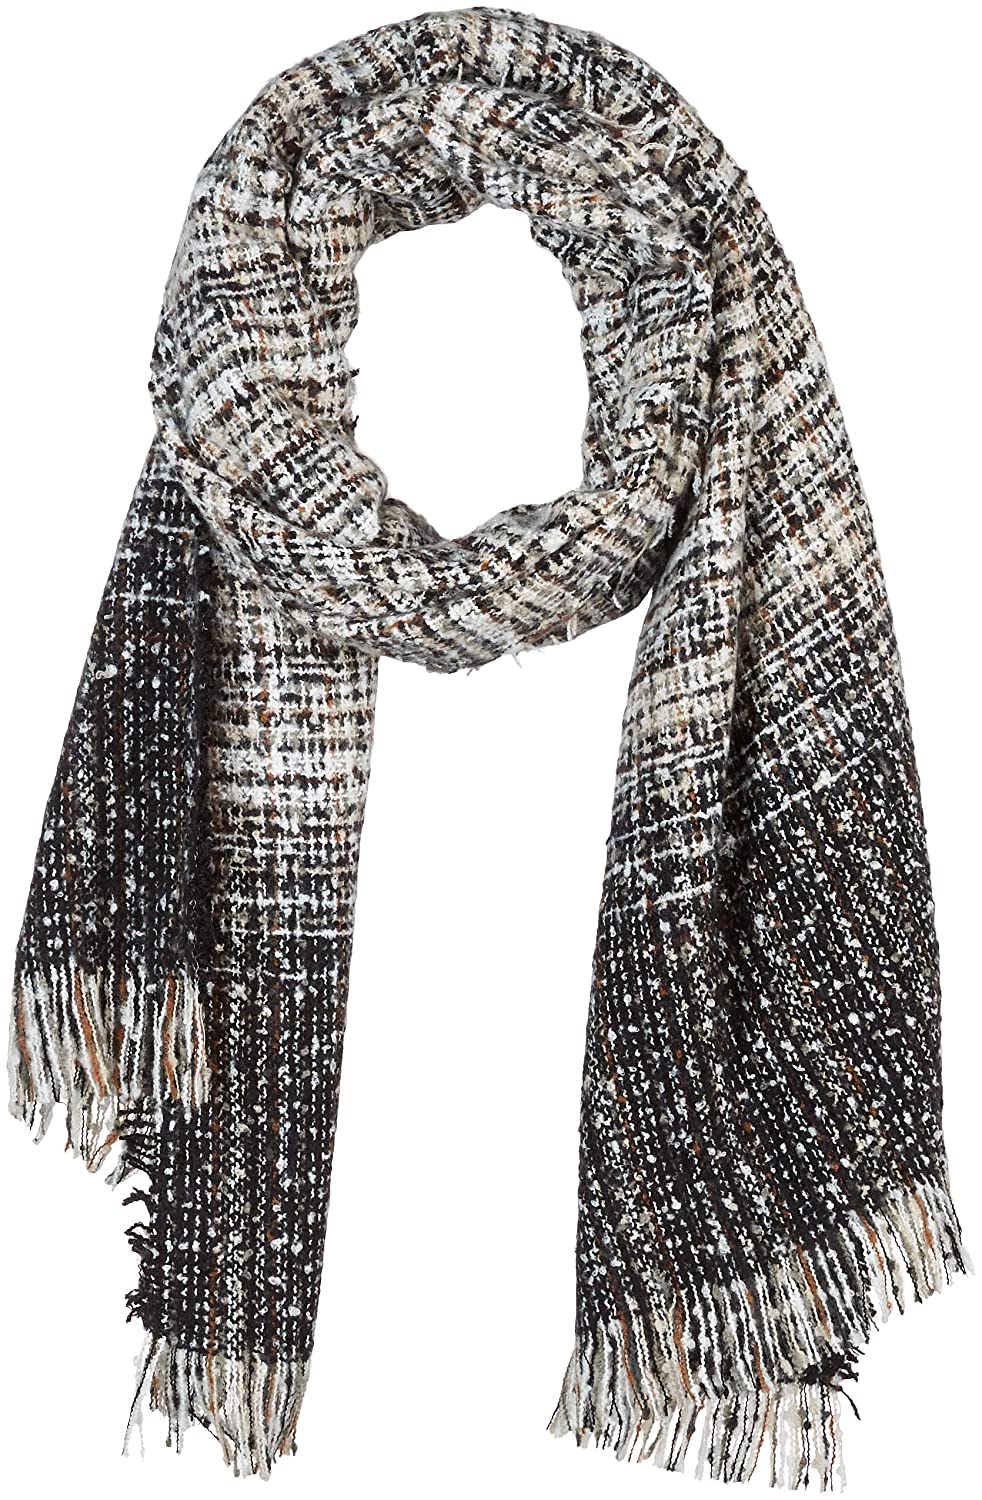 color10 Beautiful Nomad Pashmina Shawl Wrap Scarf in Solid and Plaid Pattern